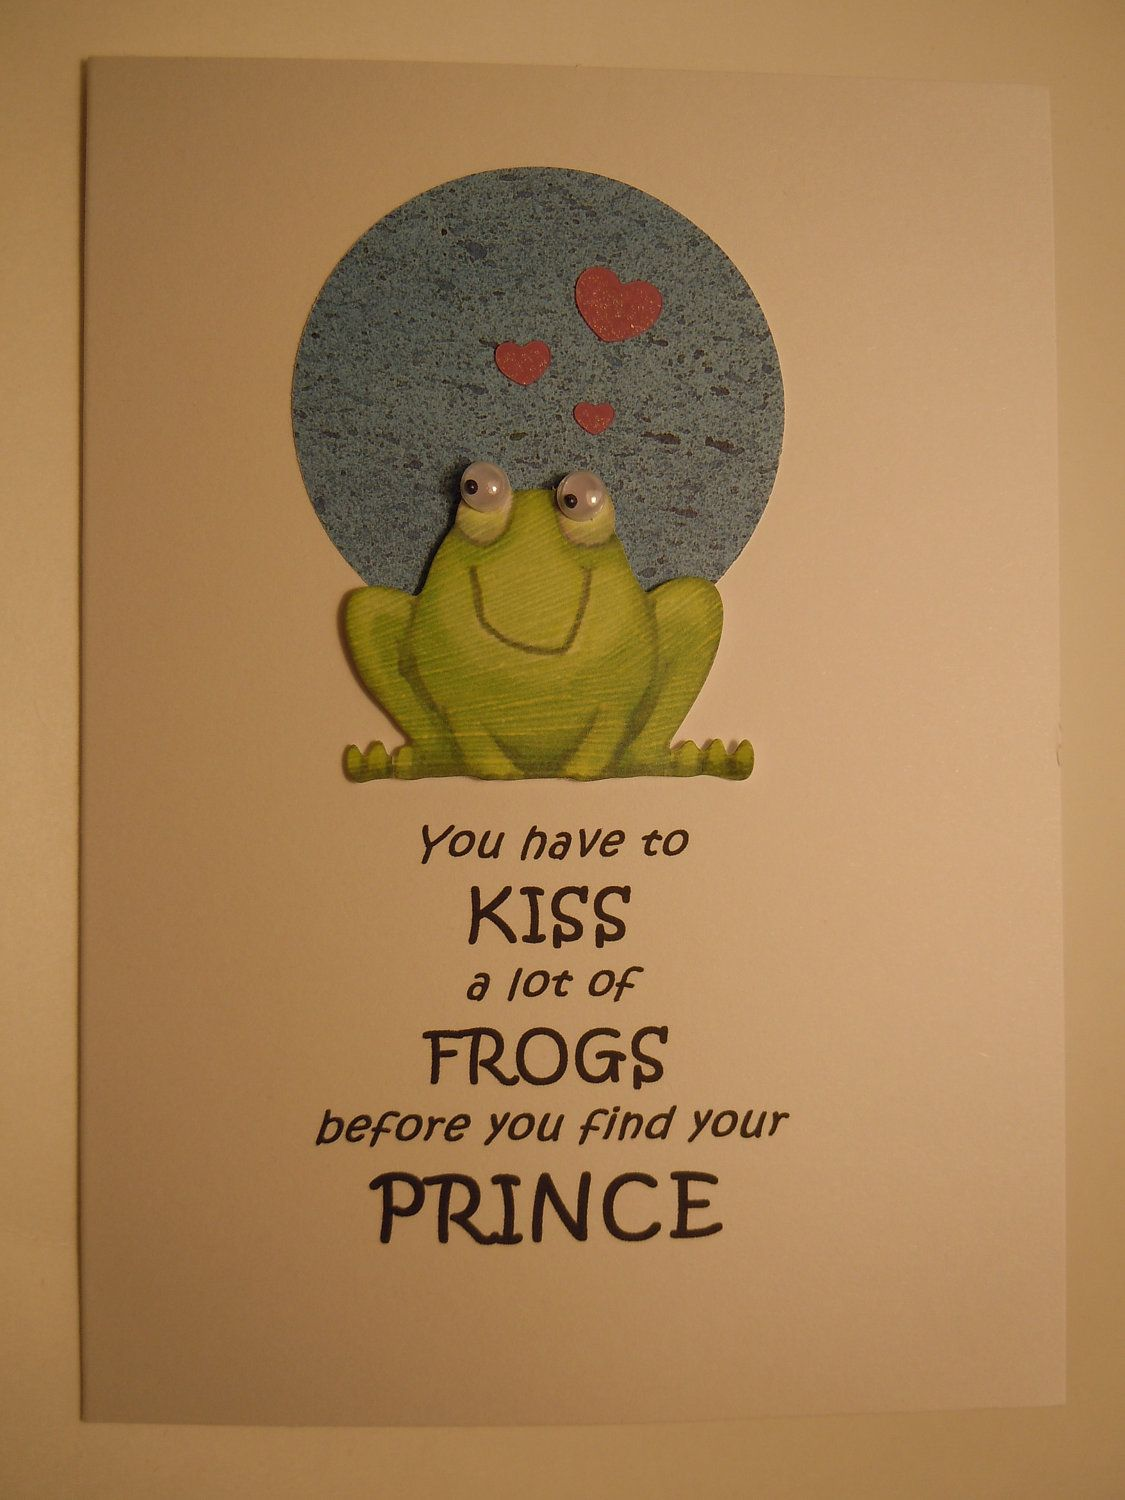 Congratulations on your engagement handmade cards engagement engagement handmade engagement congratulations greeting card with frog and hearts kristyandbryce Choice Image